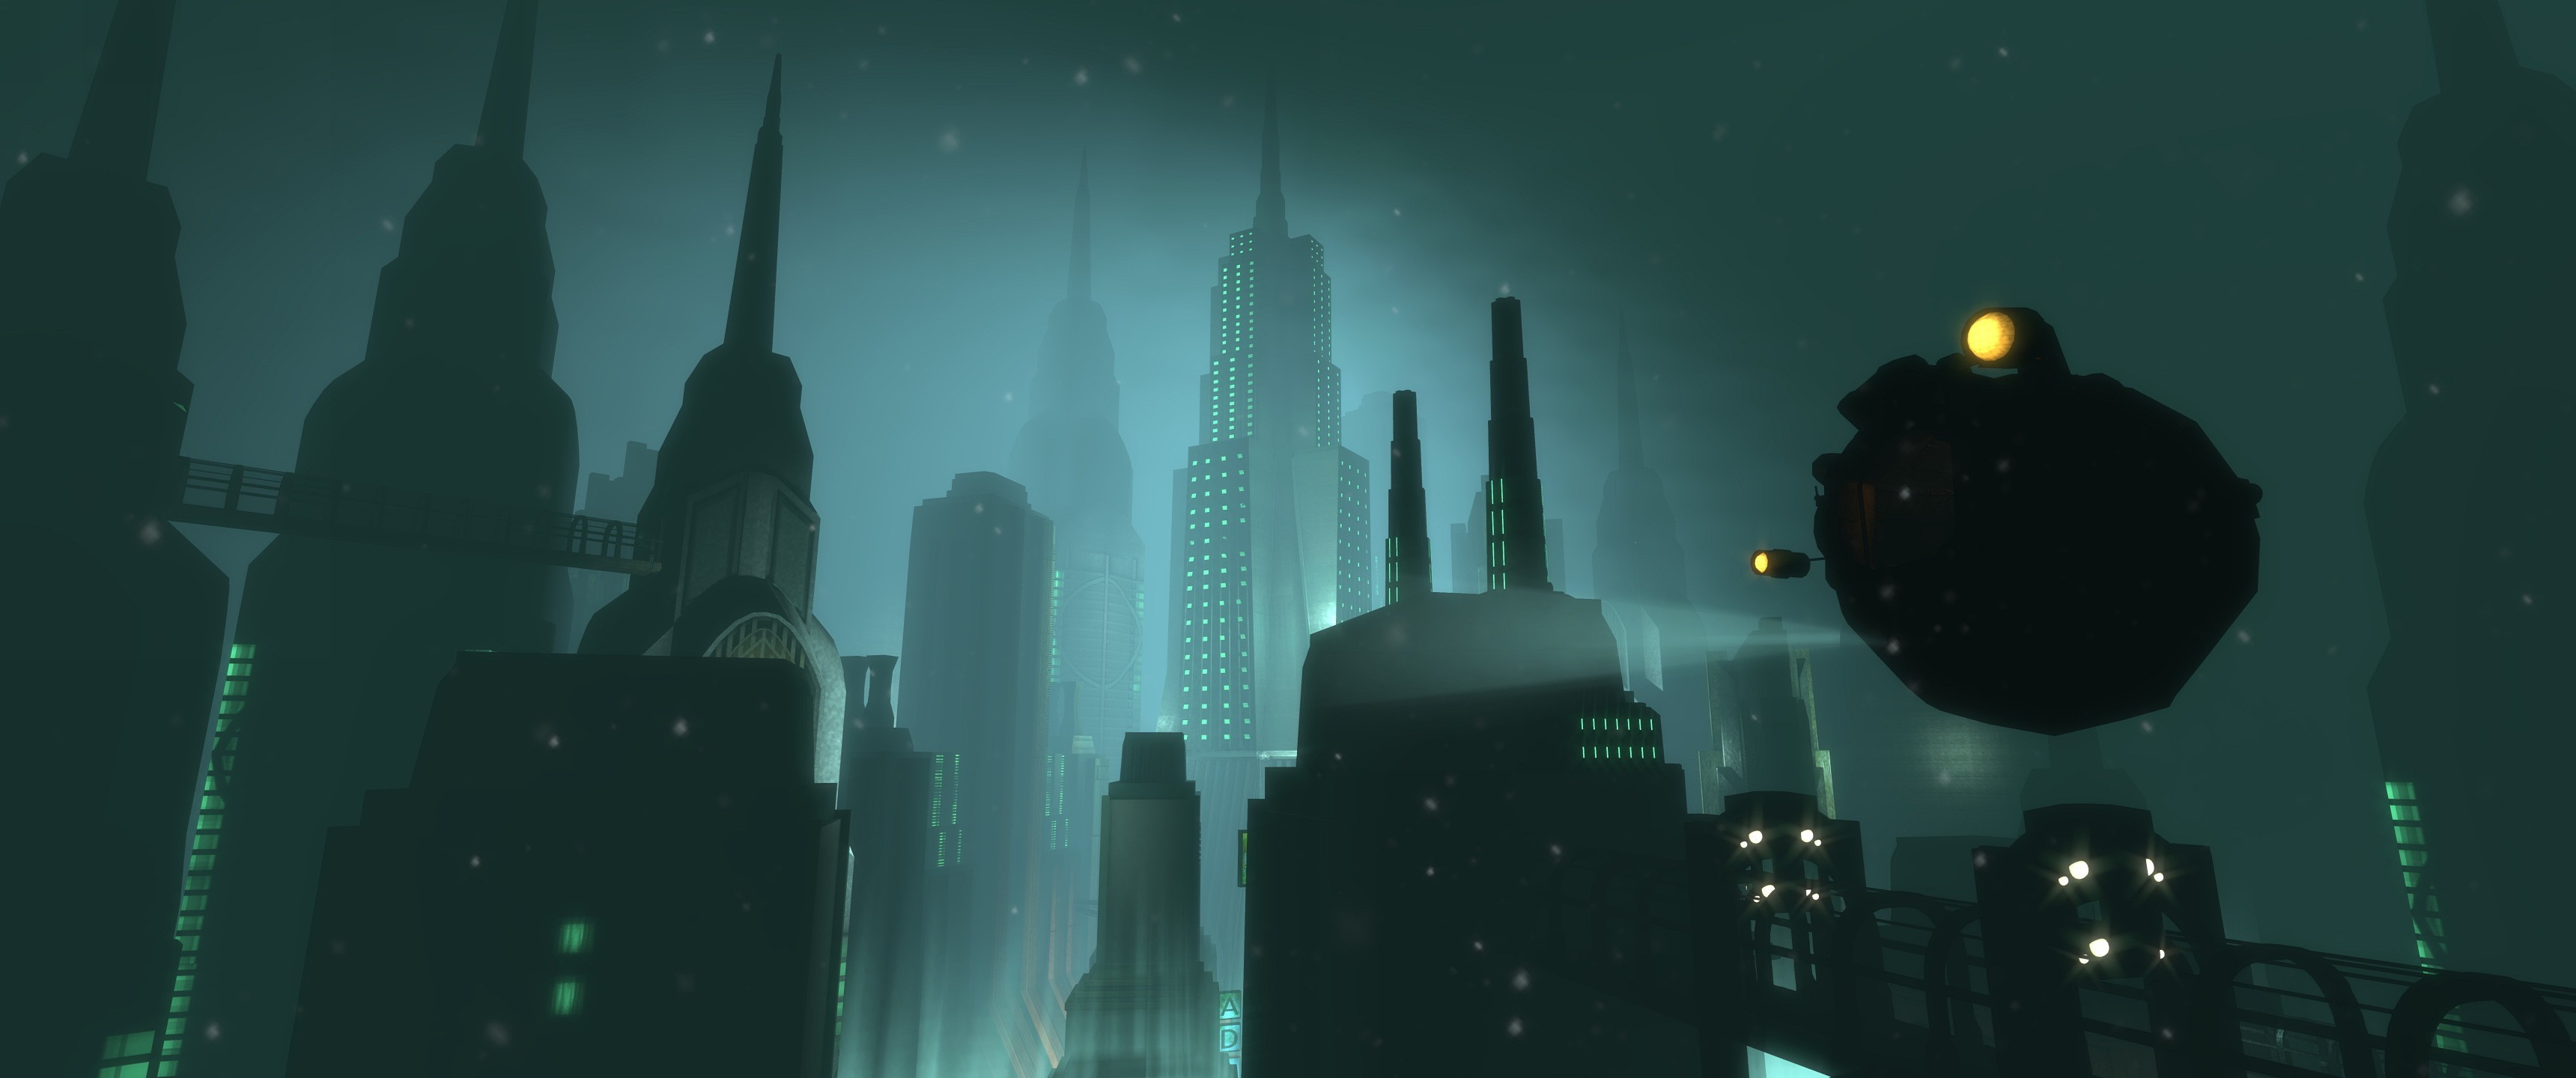 3440x1440 Rapture Bioshock Wallpaper And Background Bioshock Rapture 3440x1440 Wallpaper Teahub Io